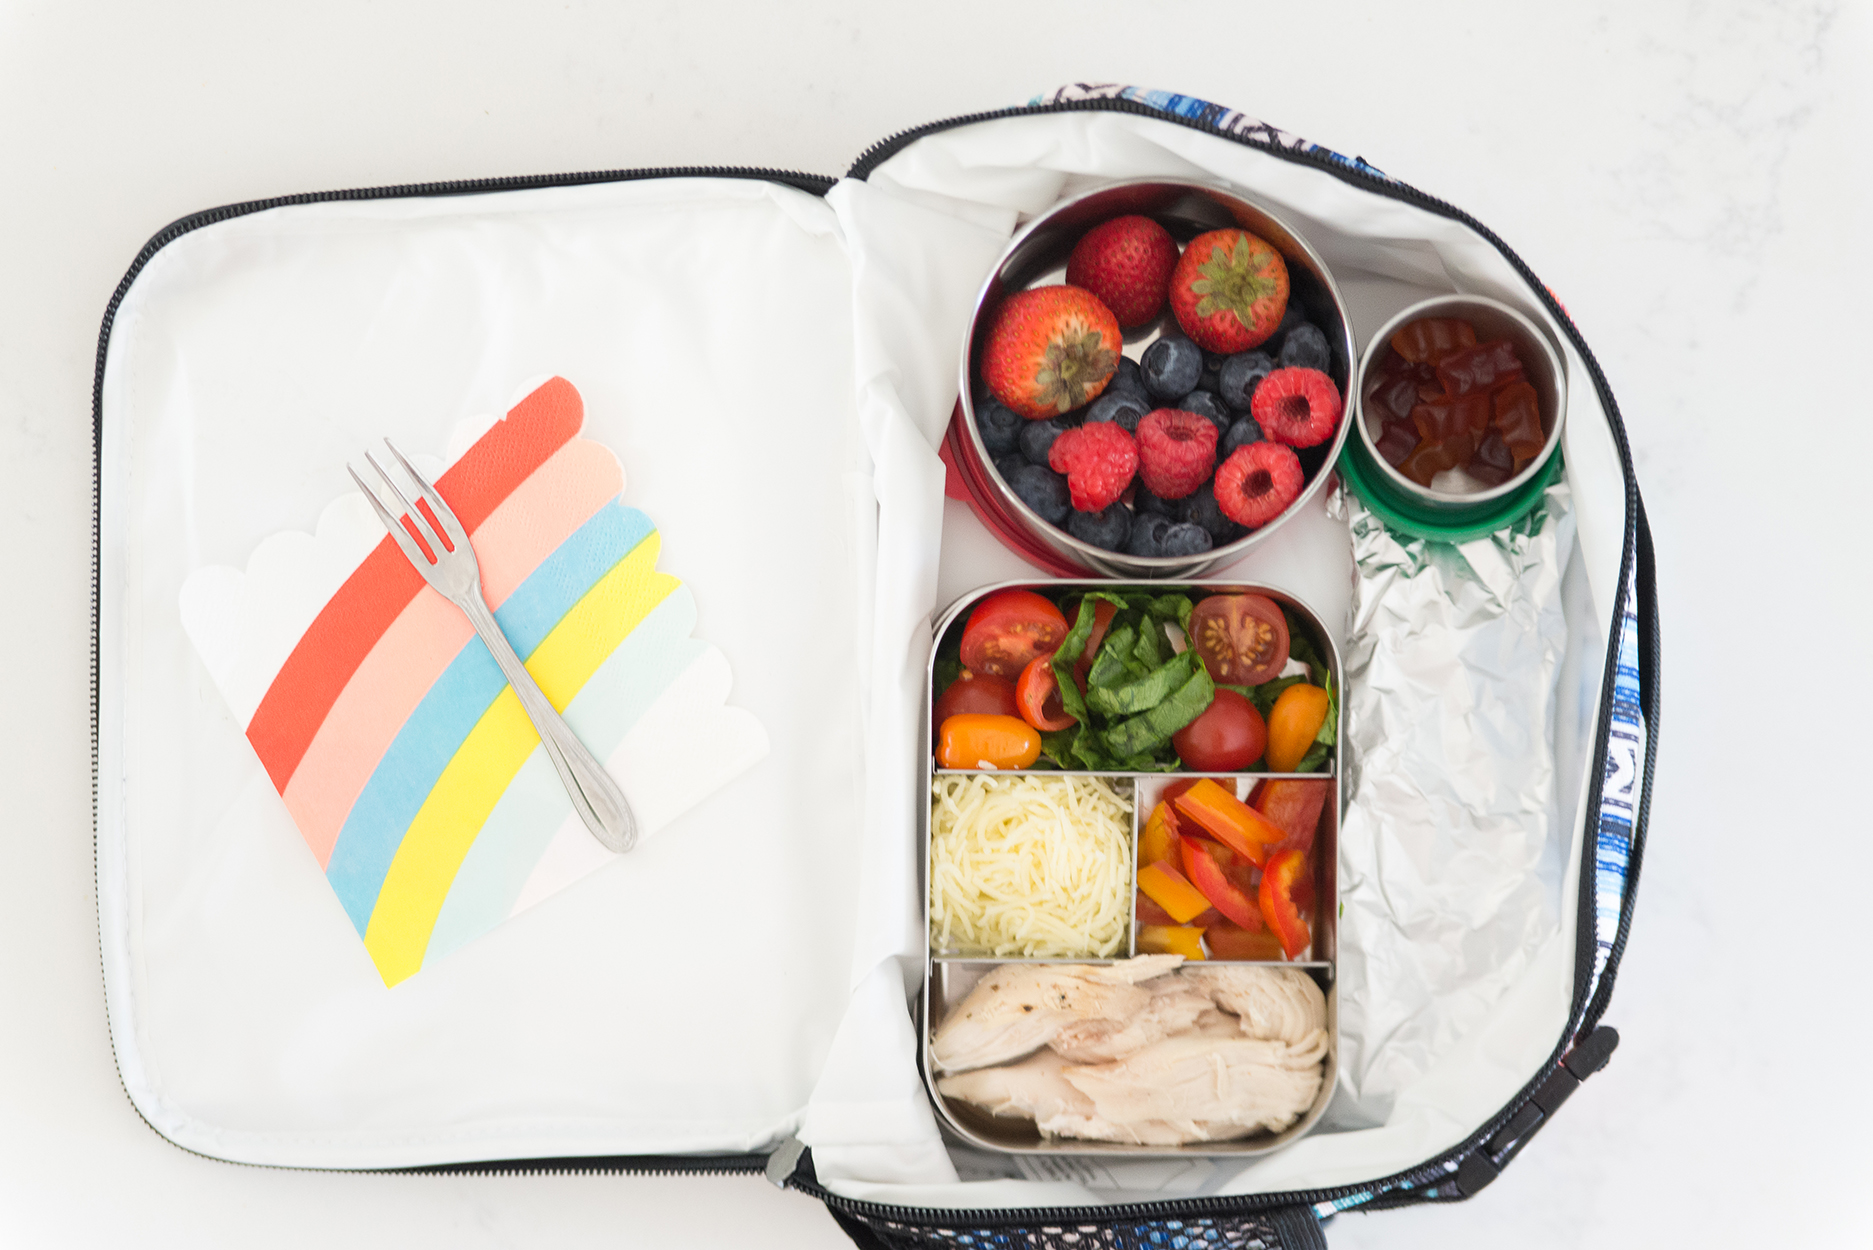 lunch box with a bento box inside full of fruit and veggies